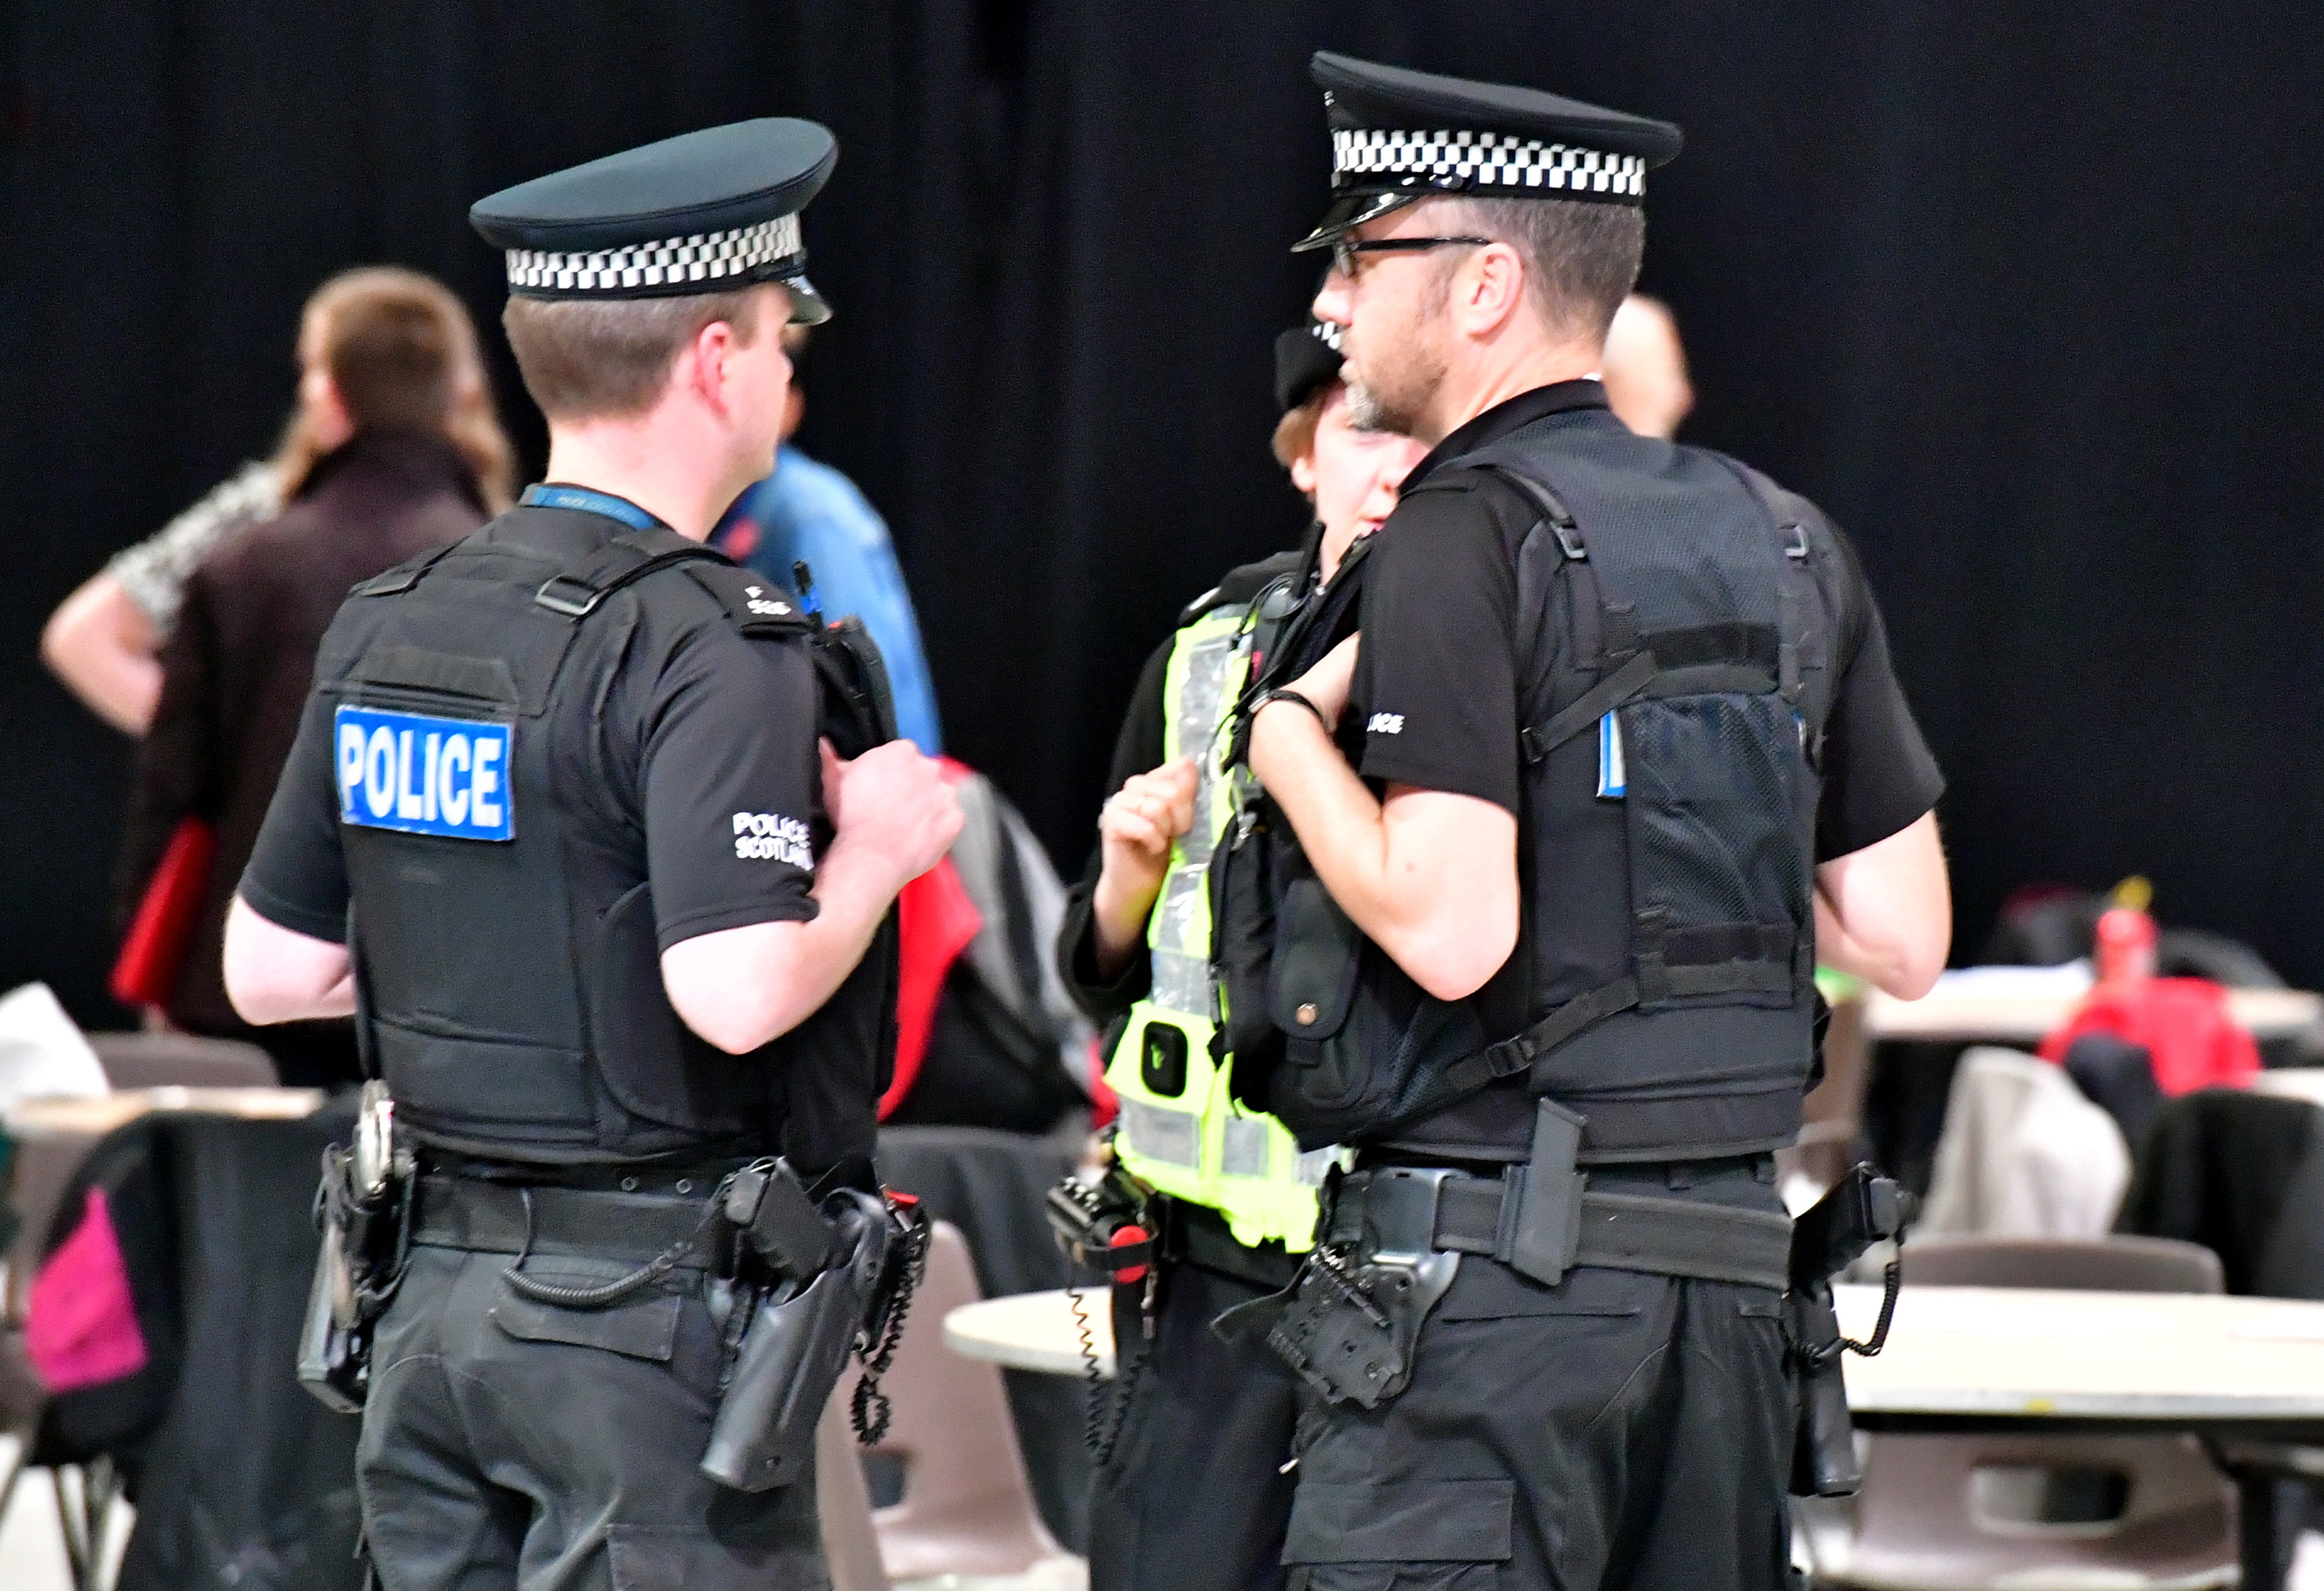 Armed Police at the count. in Aberdeen.